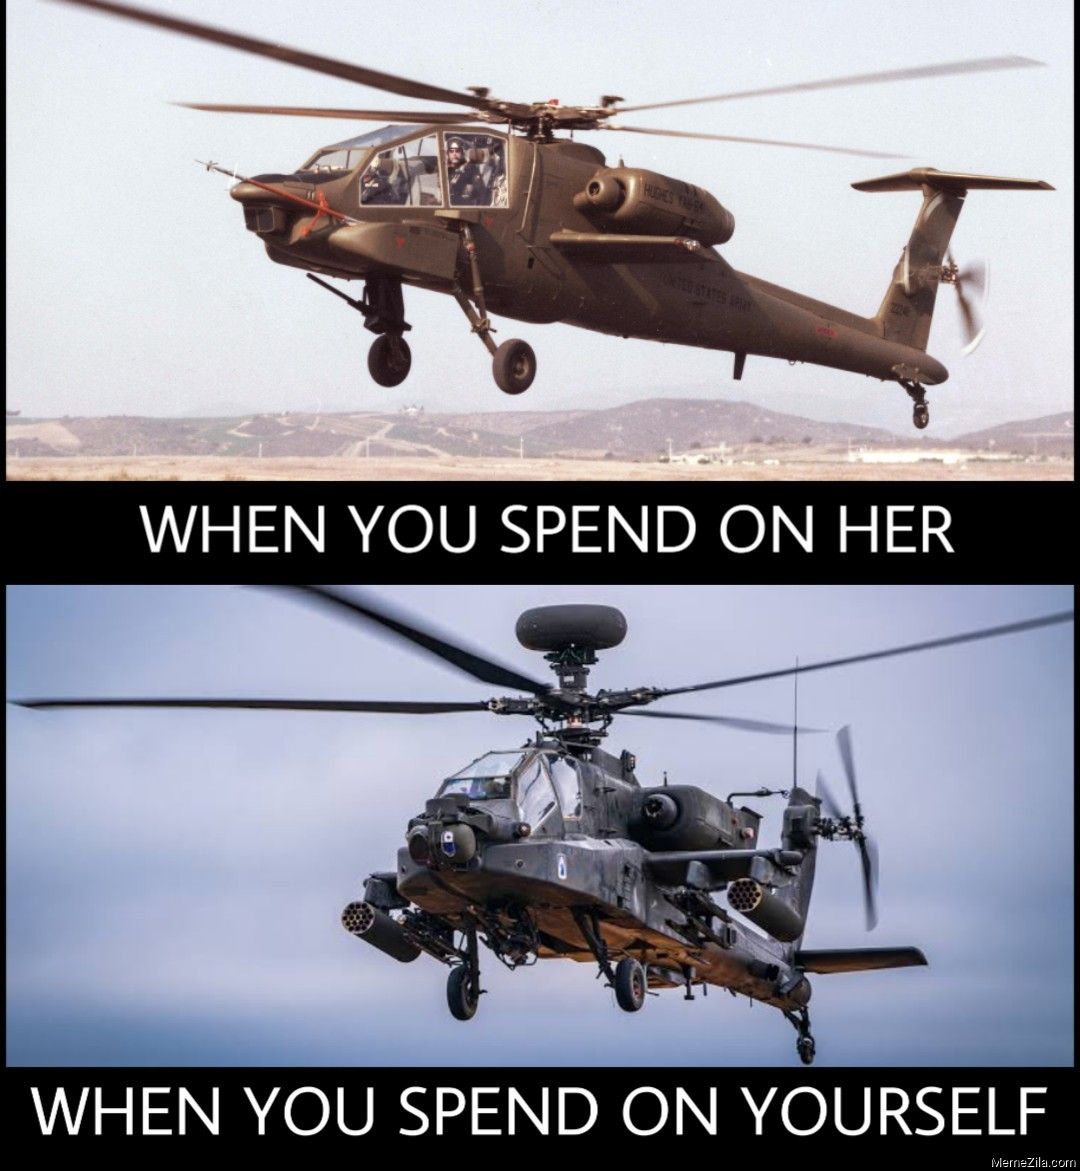 When you spend on her vs When you spend on yourself Helicopter meme